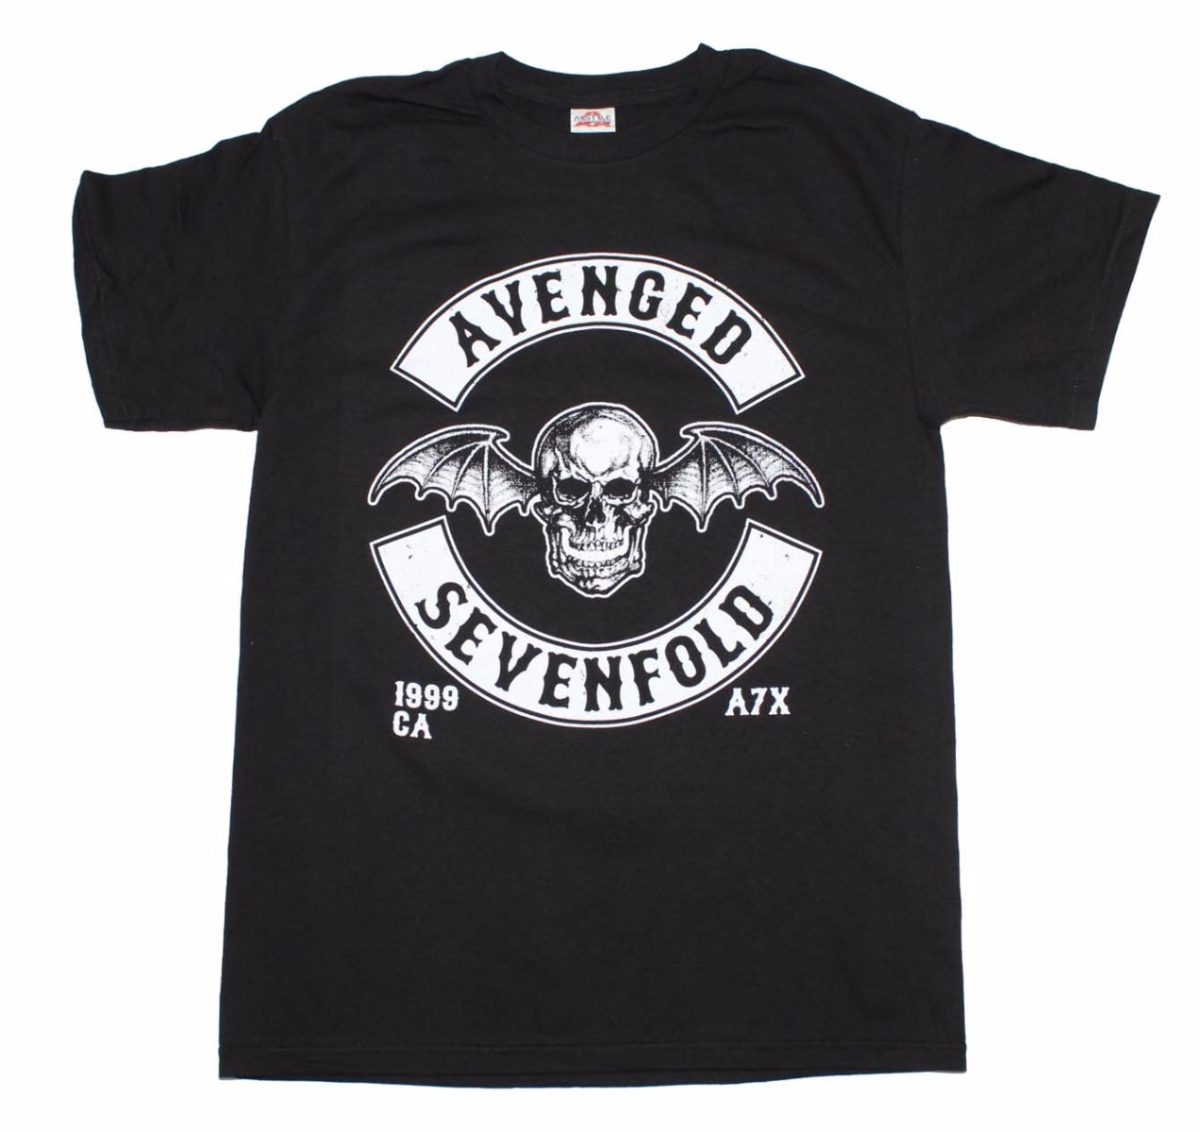 Live Nation Merchandise LNM-7A153-M Avenged Sevenfold Deathbat Crest Adult Mens T-Shirt, Black - Medium